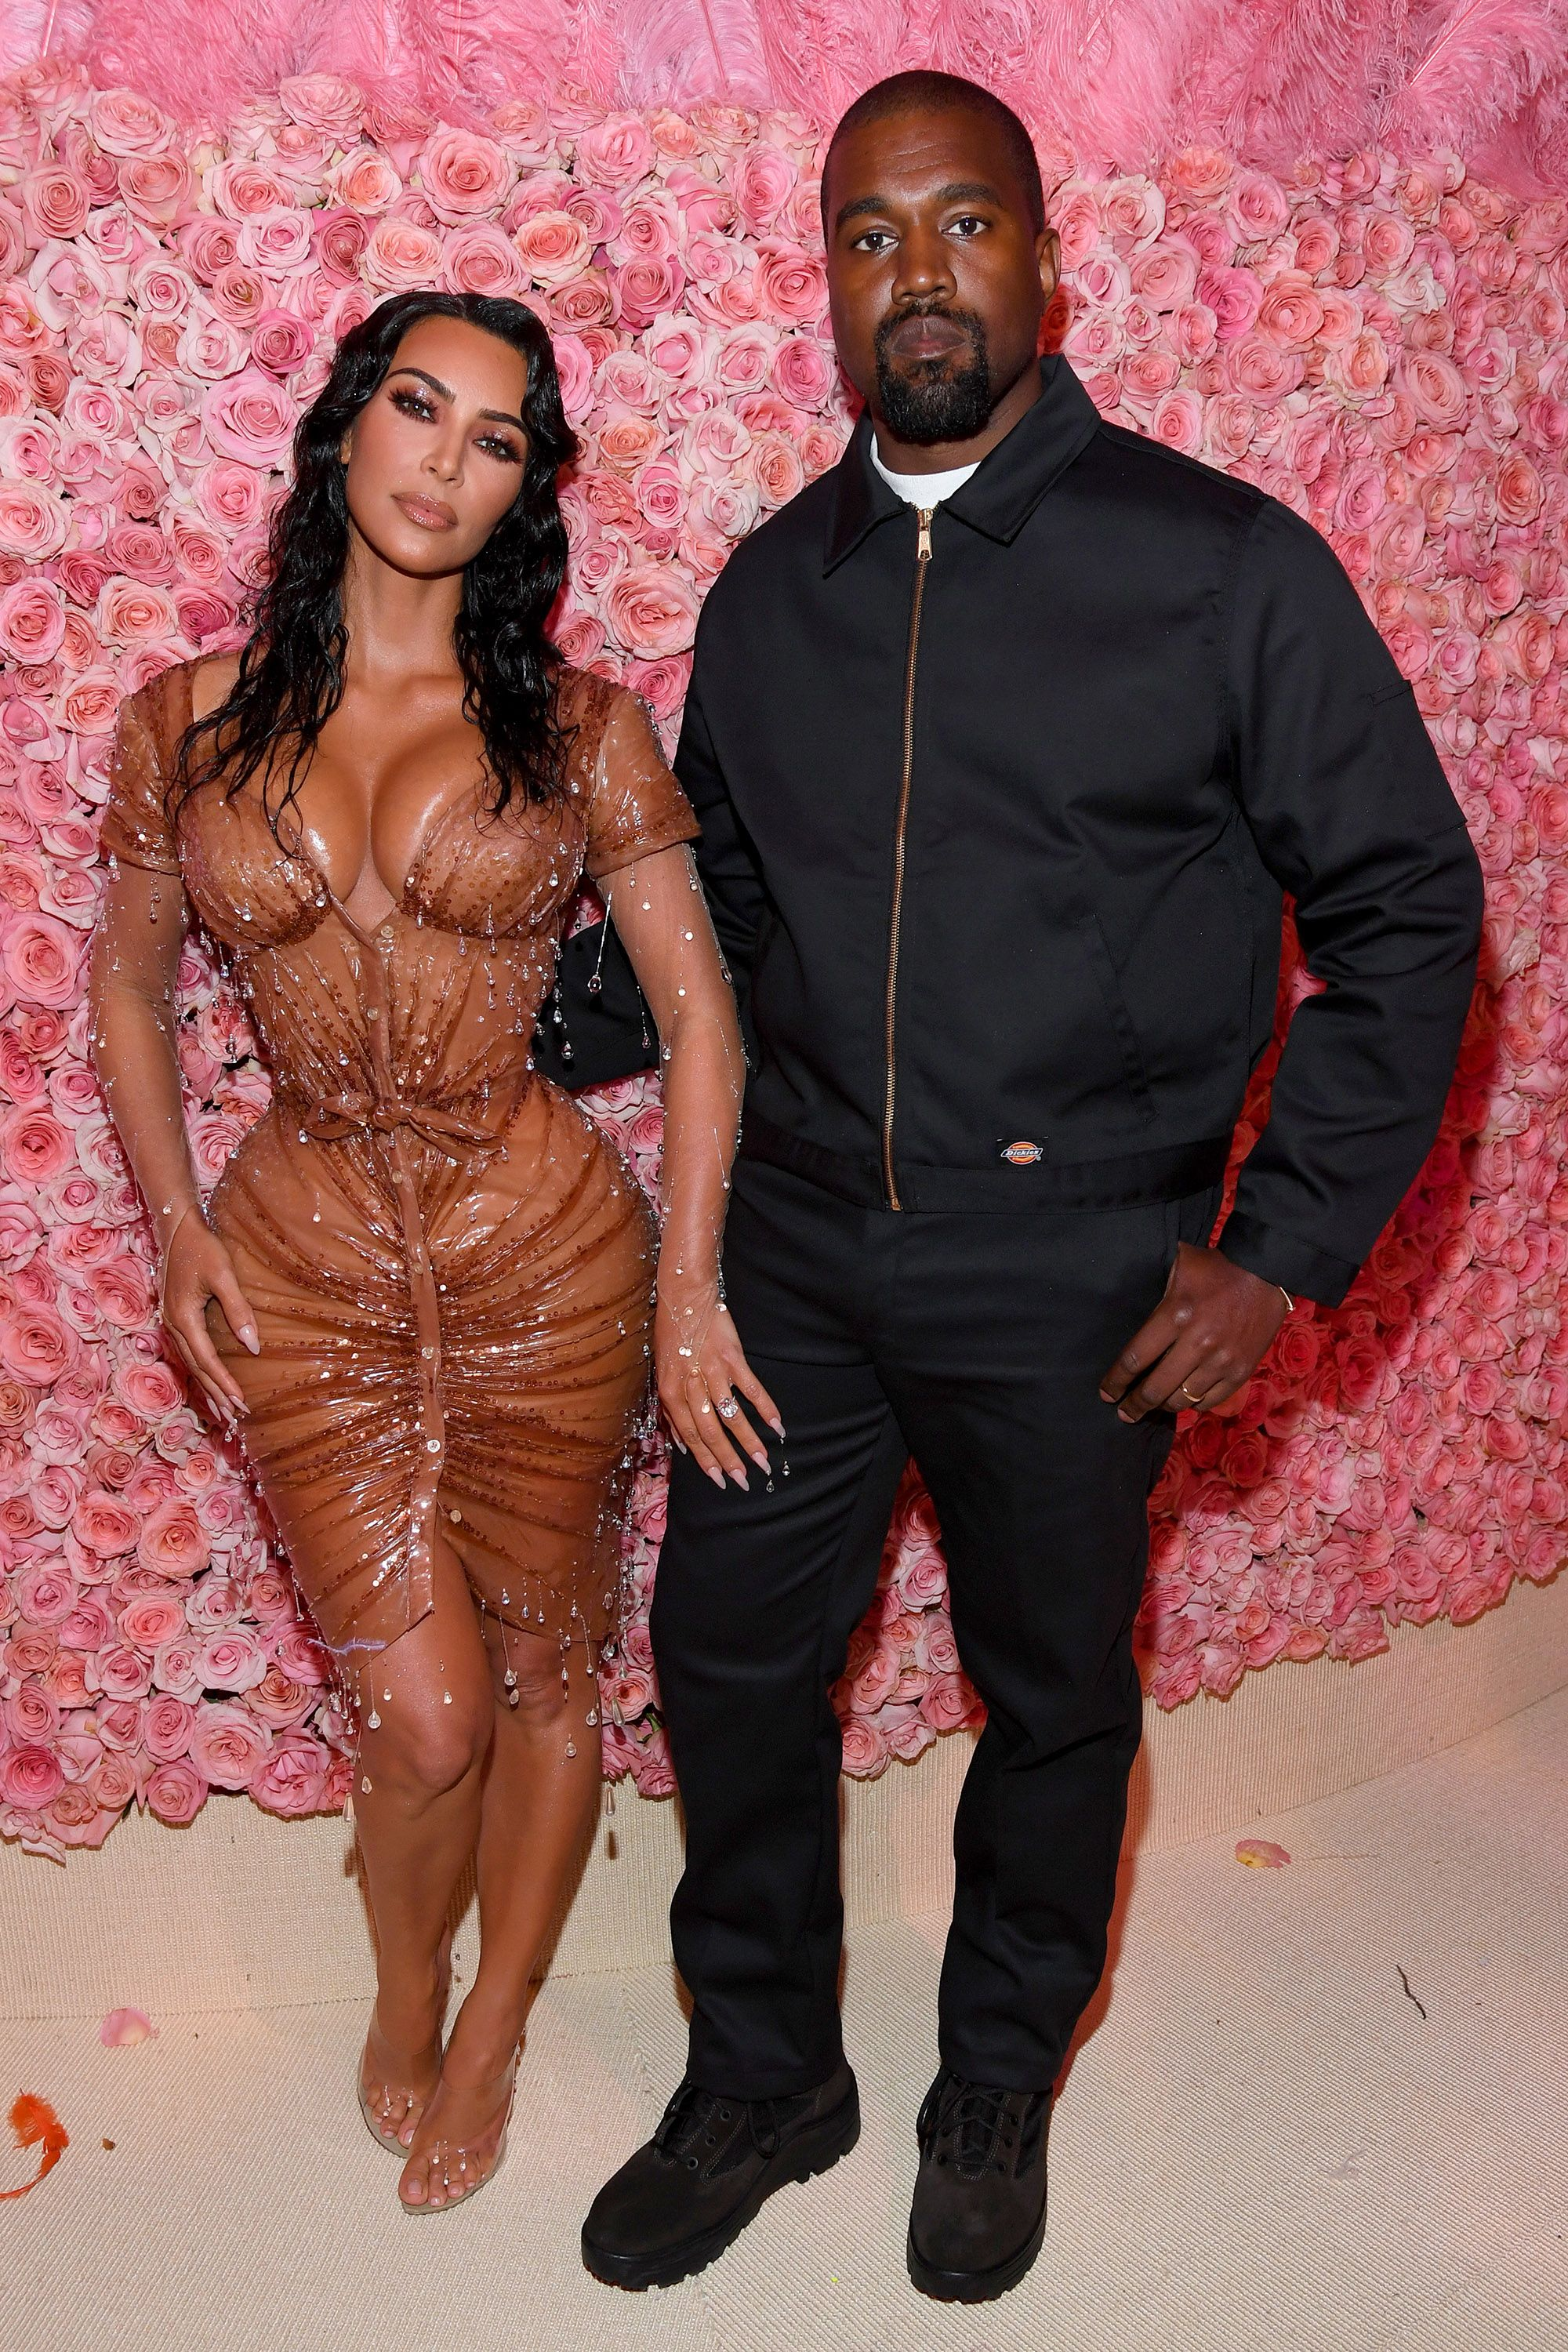 Kim Kardashian And Kanye West's Baby Boy Is Here